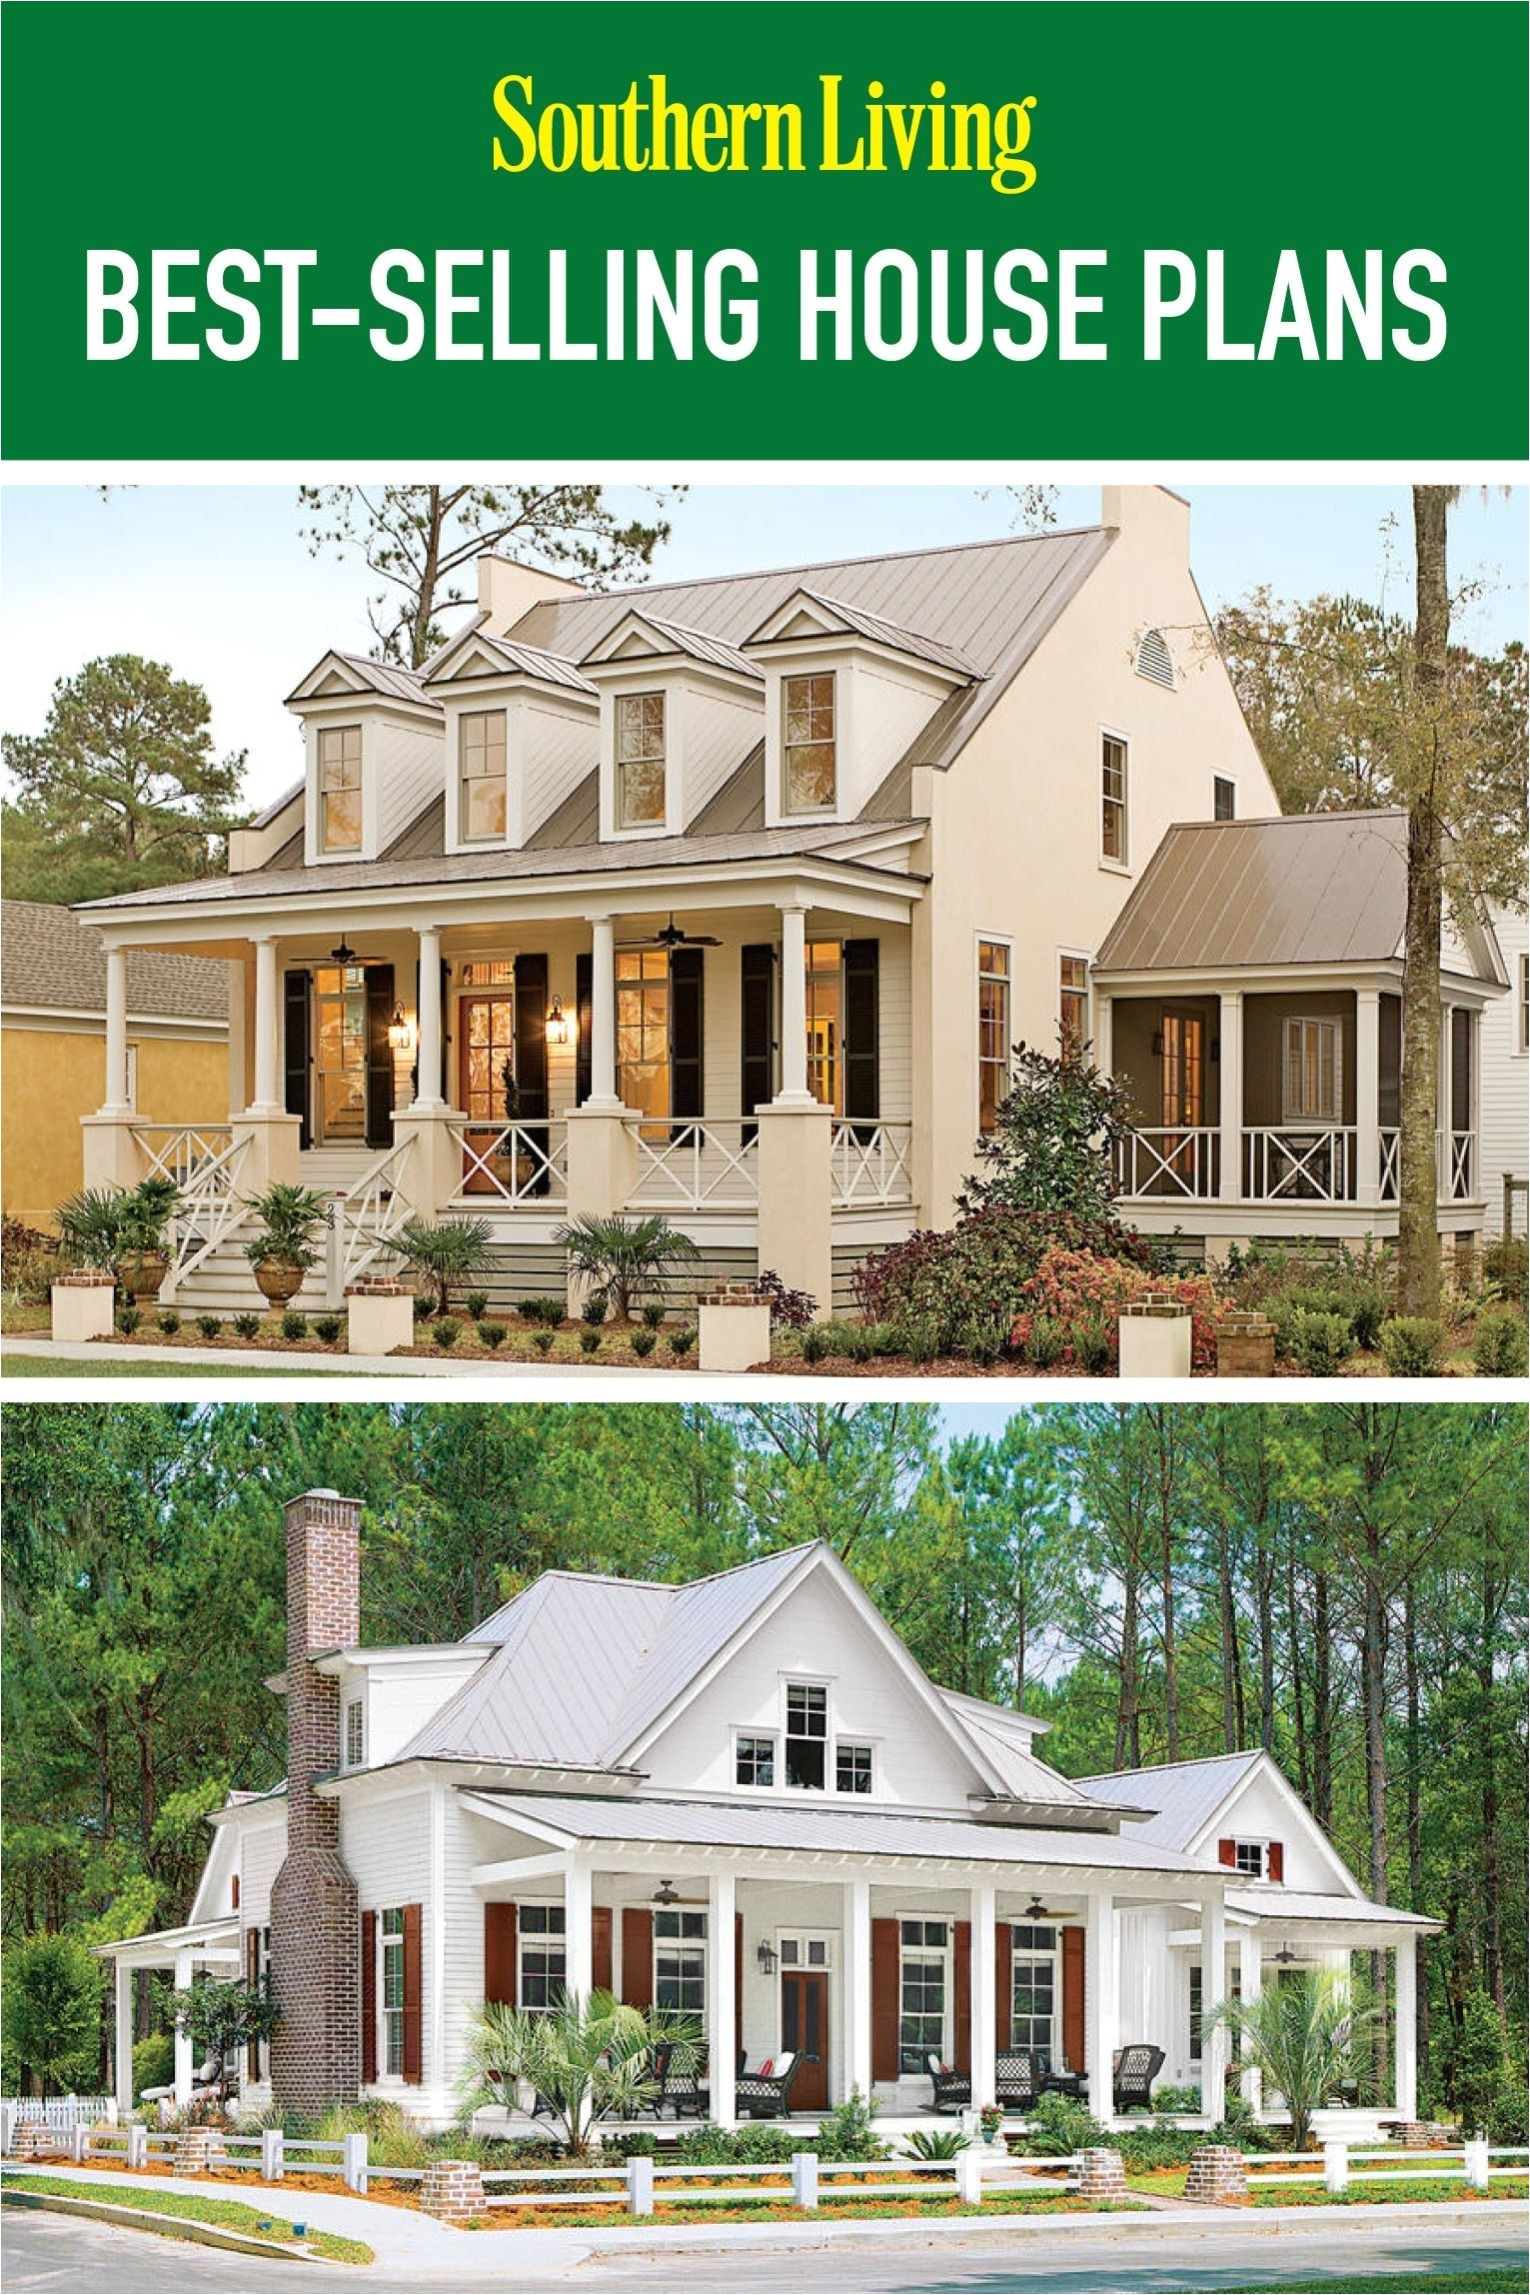 cedar home plans best of top 12 best selling house plans